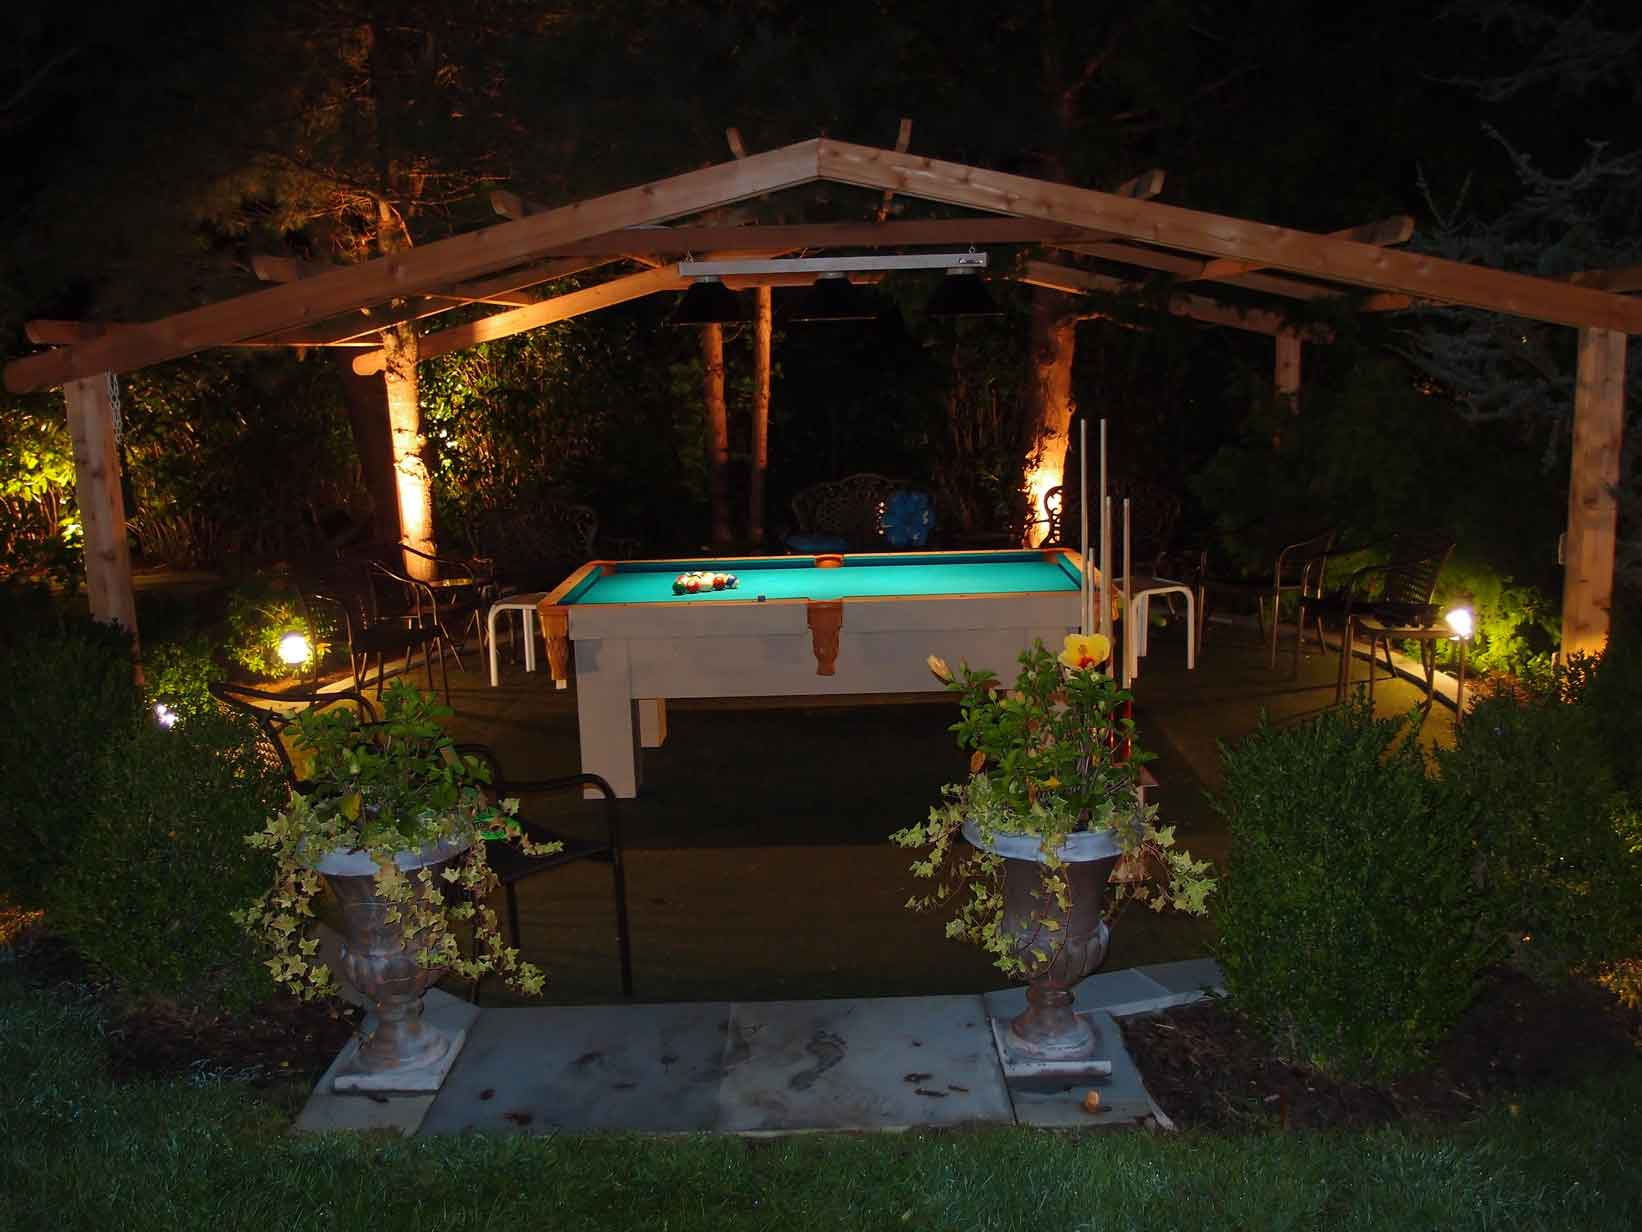 Orion custom pool table as the focal point of client's outdoor living space